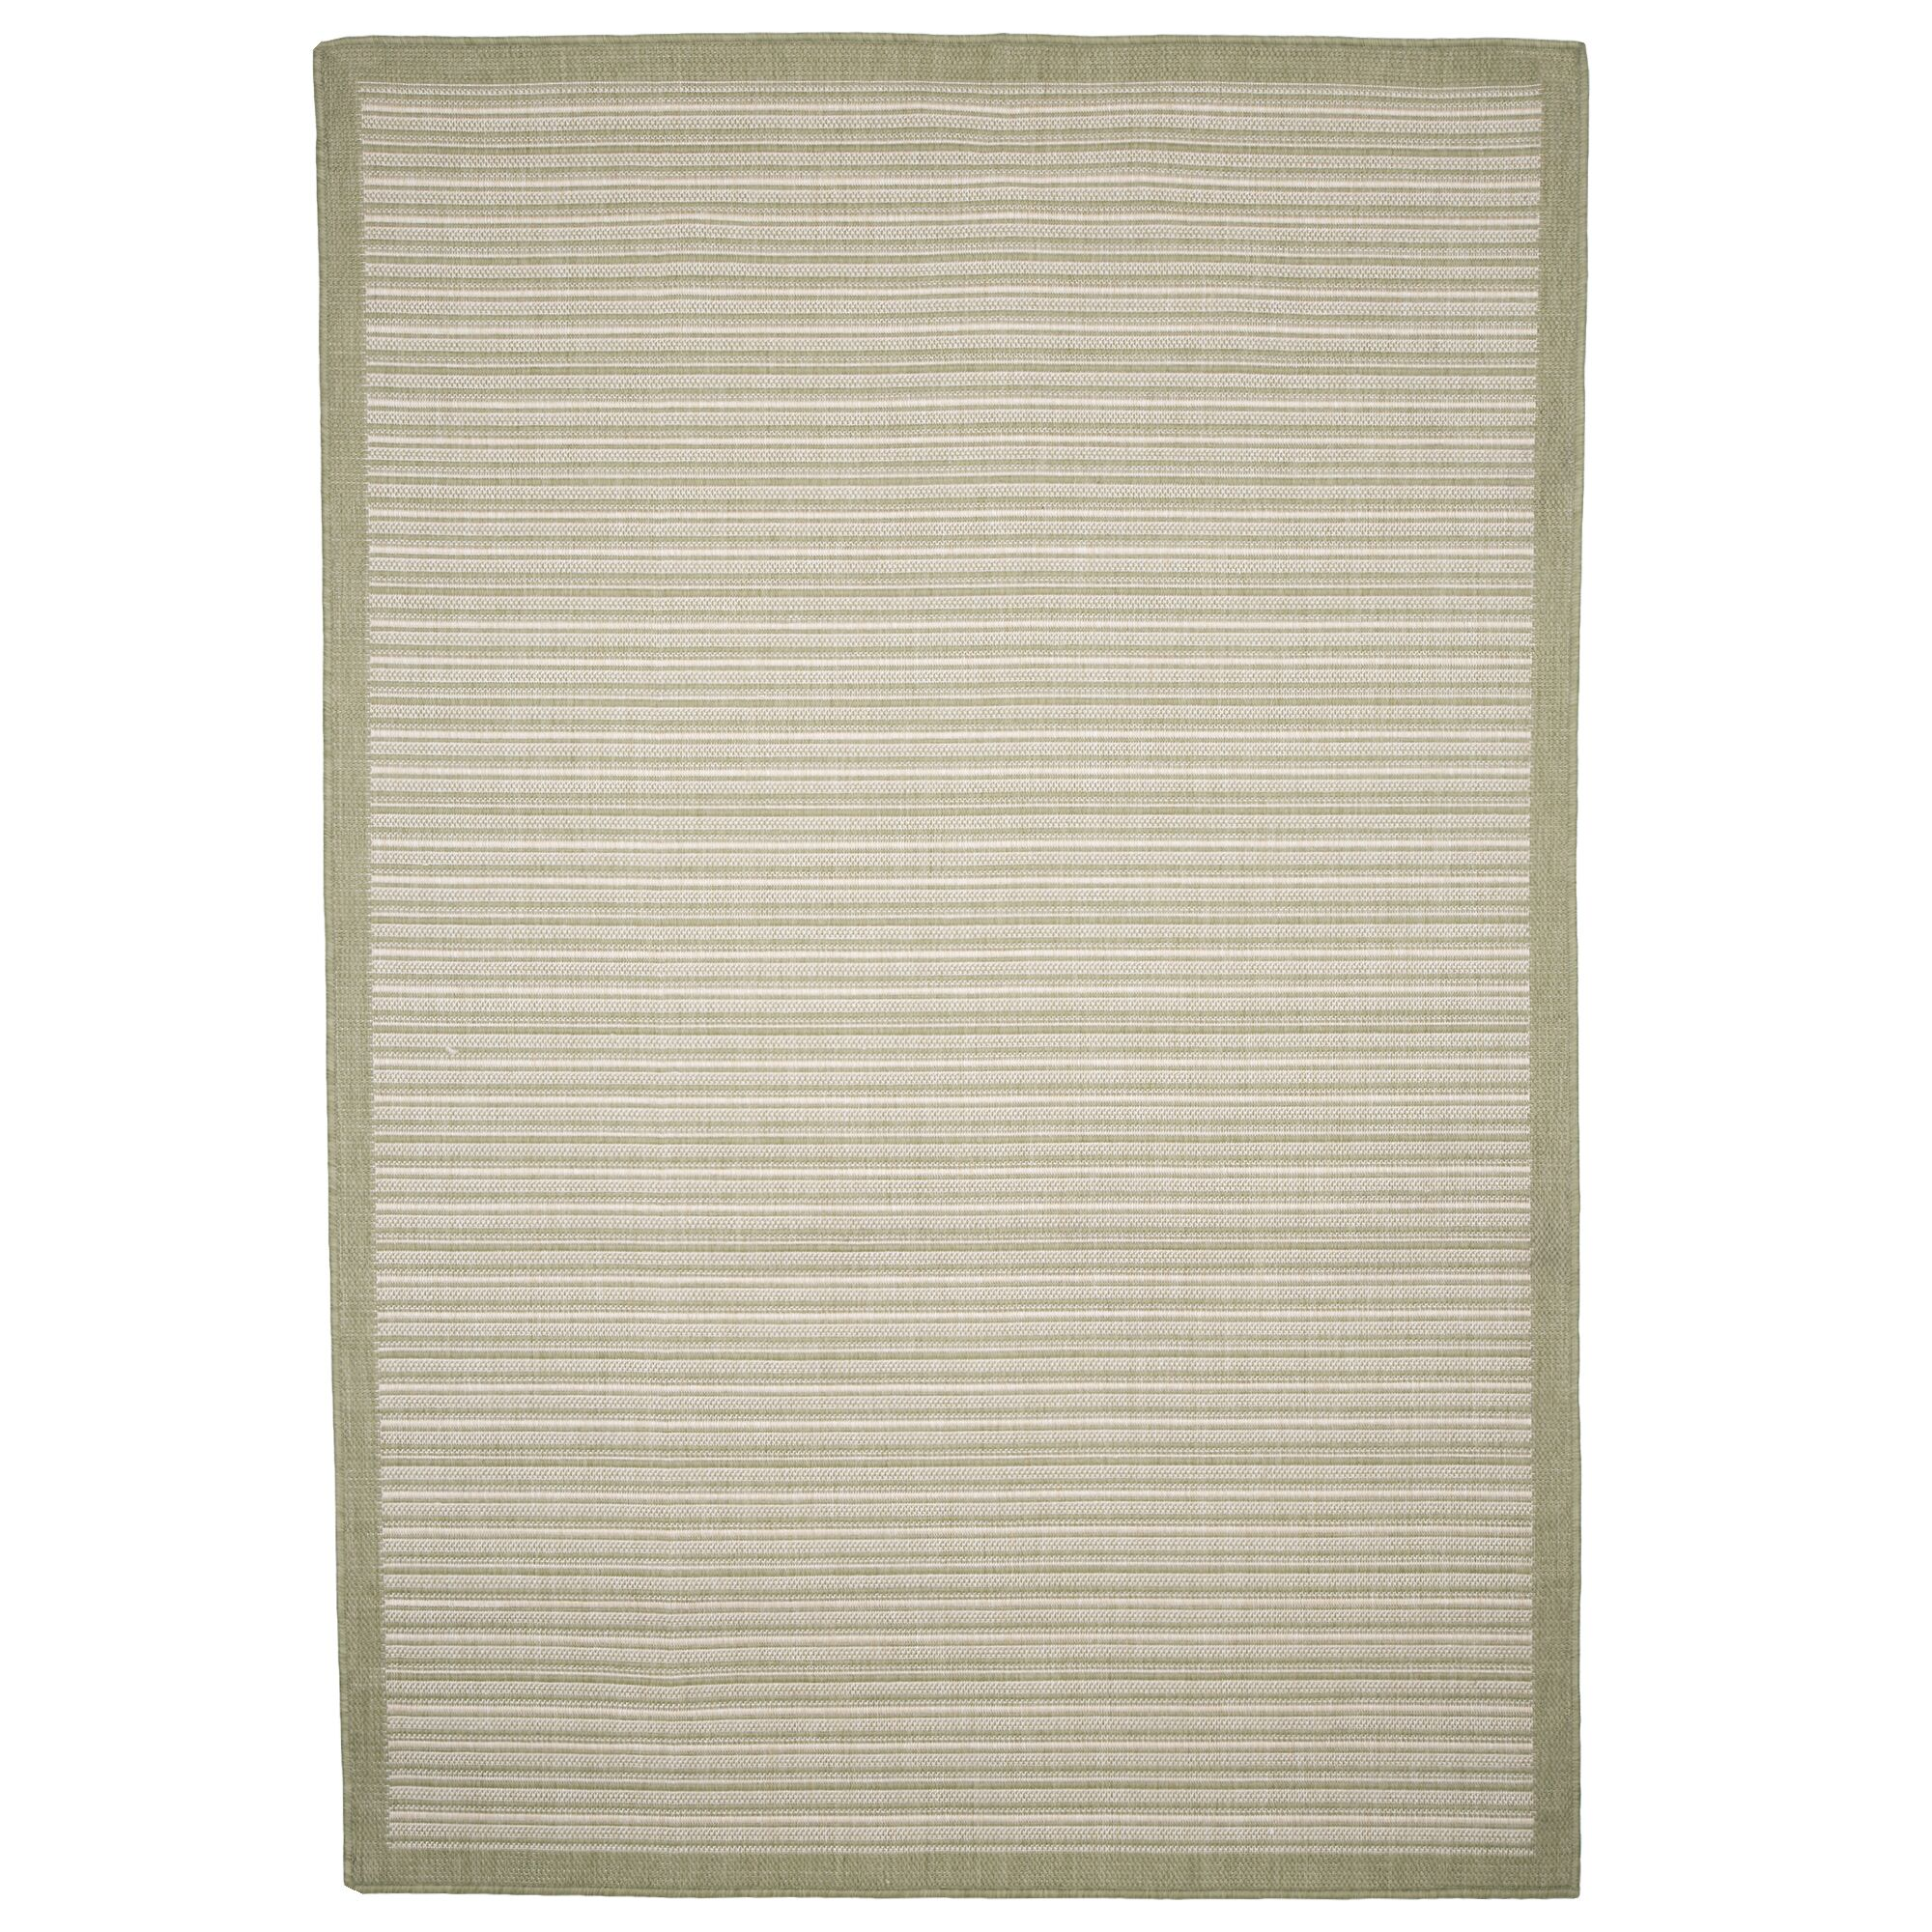 Green/Beige Indoor/Outdoor Area Rug Rug Size: Rectangle 5' x 8'